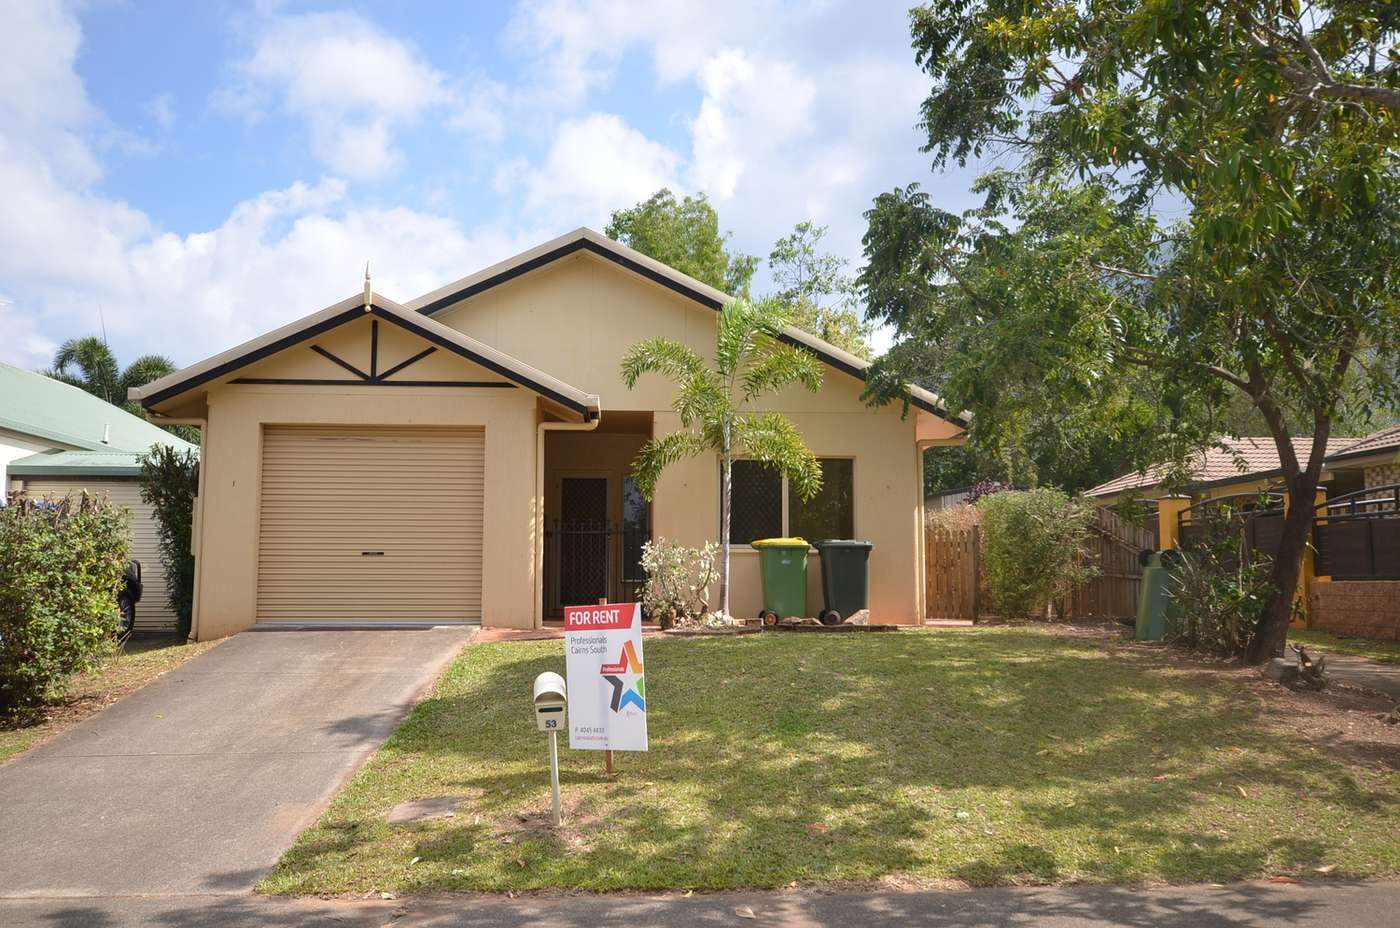 Main view of Homely house listing, 53 Accatino Street, Edmonton, QLD 4869